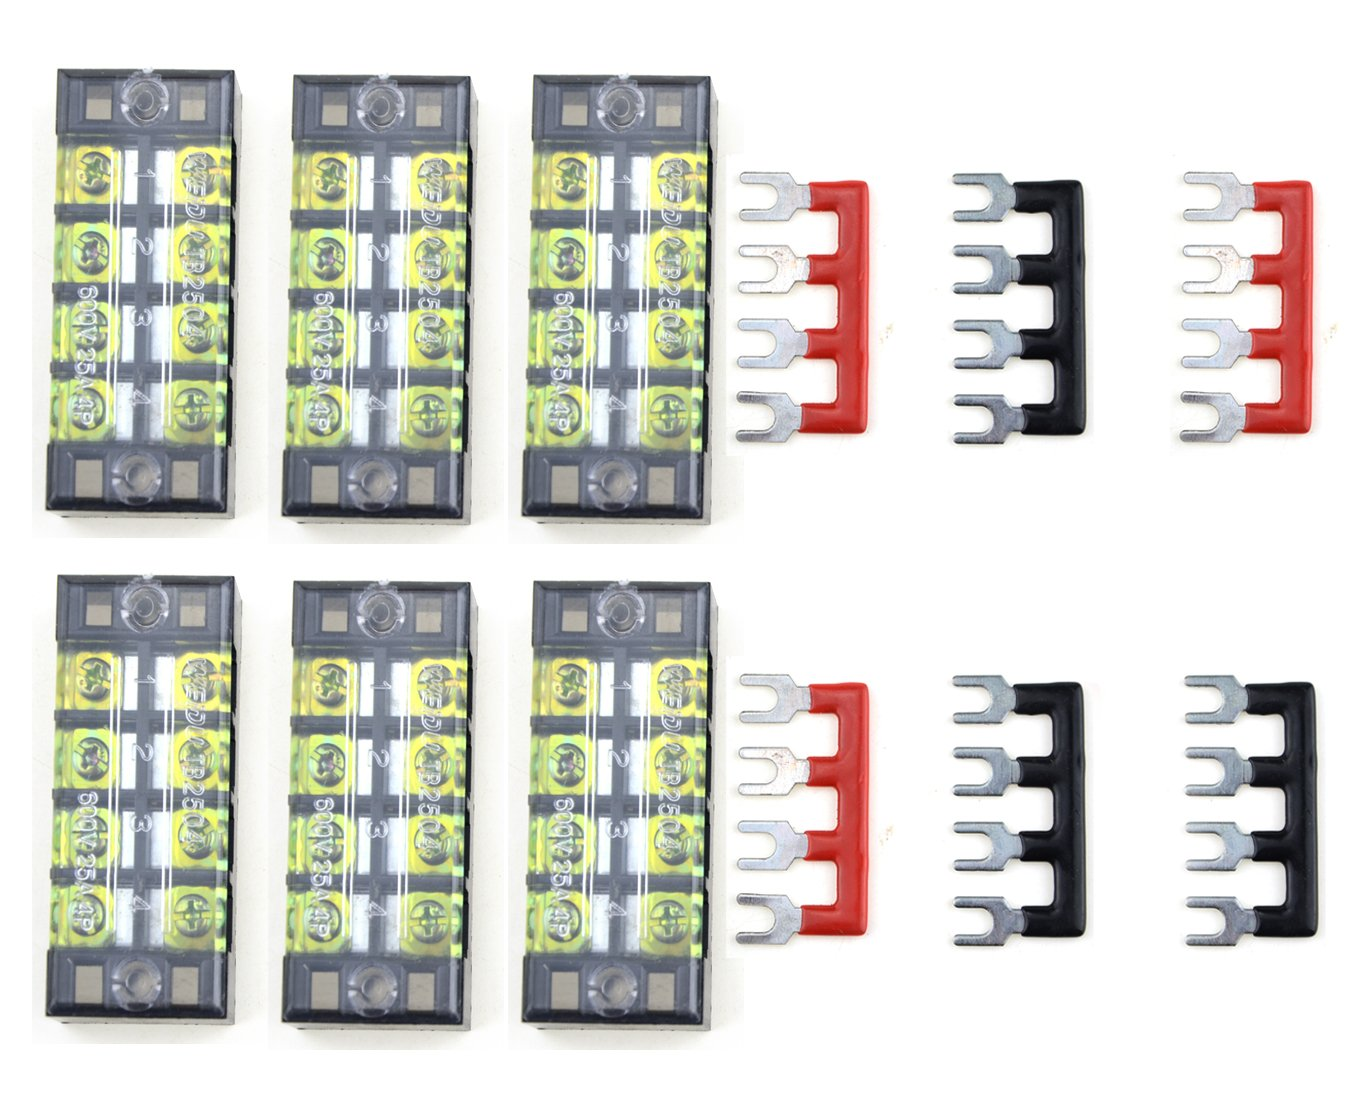 XLX 12pcs (6 Set) 600V 25A 4 Positions Double Row Screw Terminal Strip and 400V 25A 4 Positions Red/Black Pre-Insulated Terminal Barrier Strip